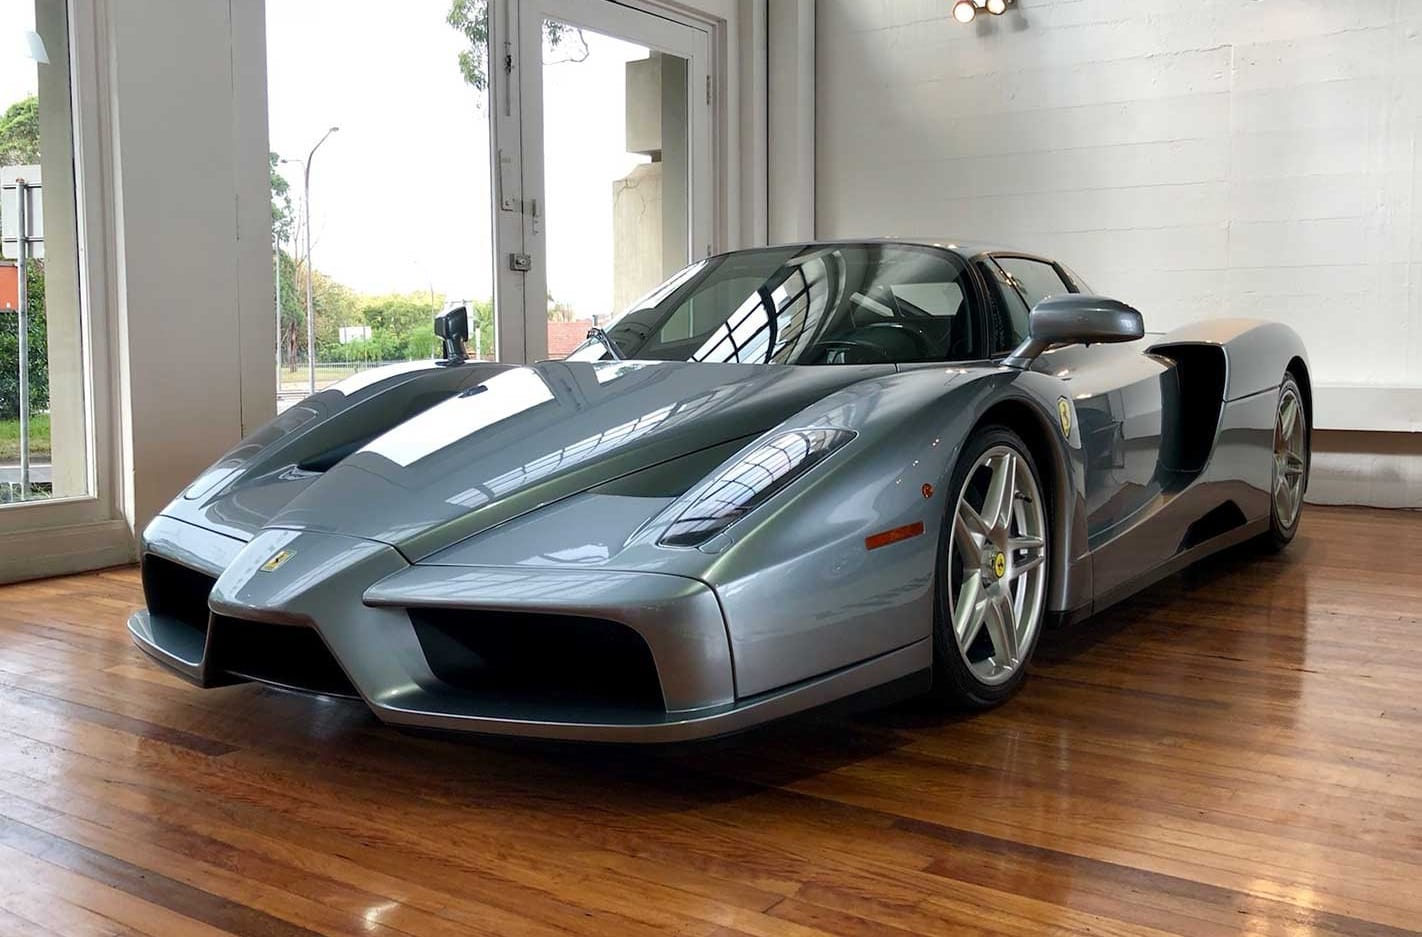 Australias most expensive cars arent selling